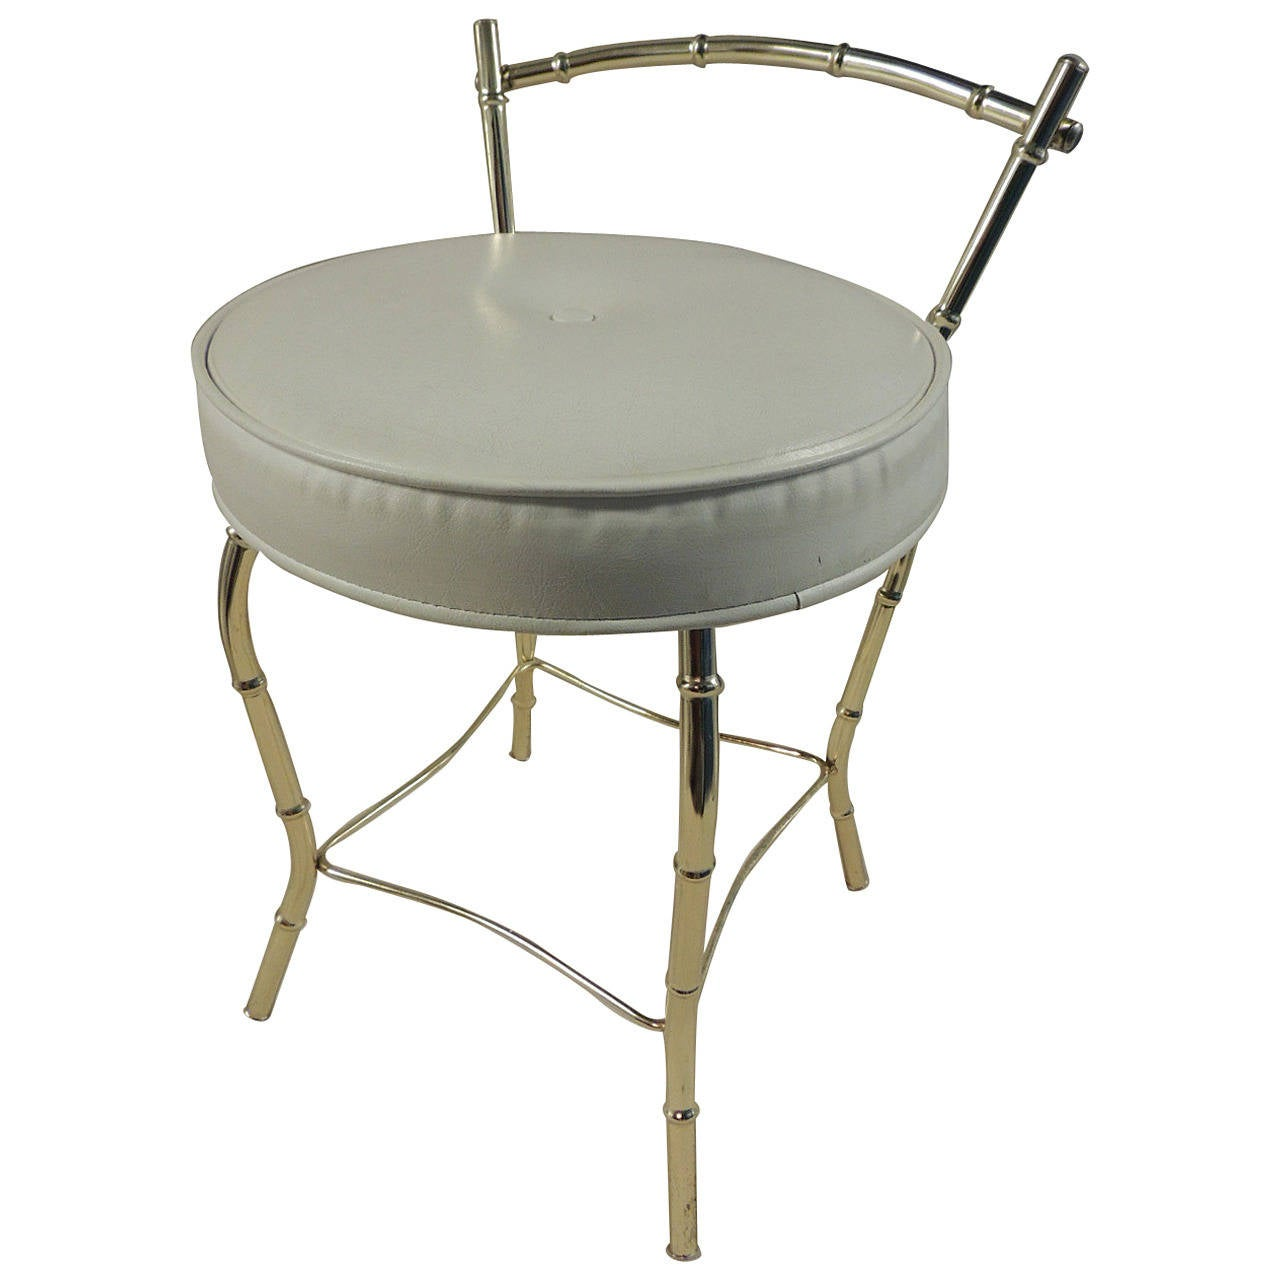 Vintage art deco vanity stool with round cushion at 1stdibs - Antique vanity stools ...